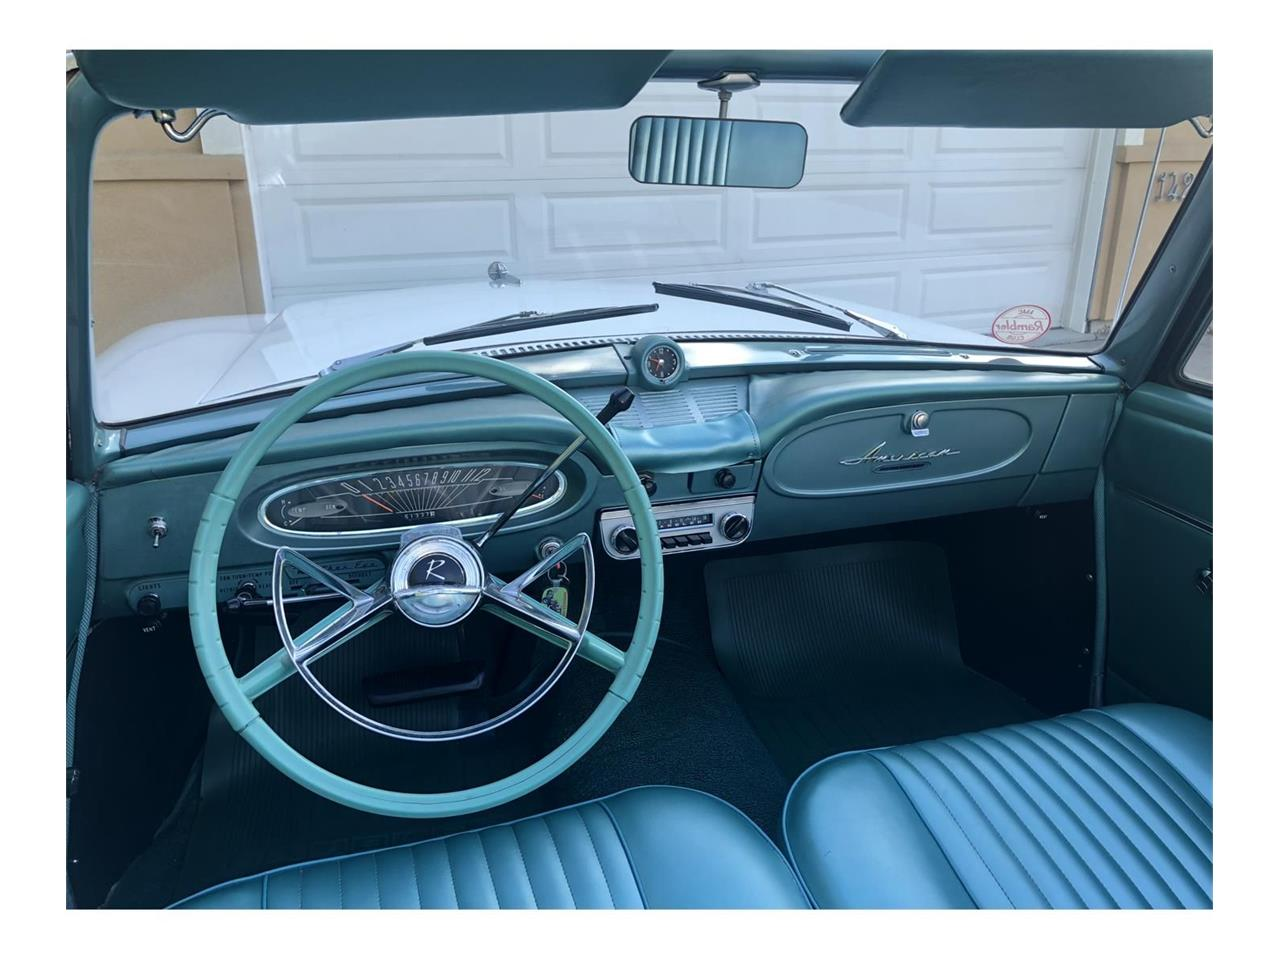 Large Picture of Classic 1962 Rambler American located in Annandale Minnesota - $18,500.00 Offered by Classic Rides and Rods - PYWM